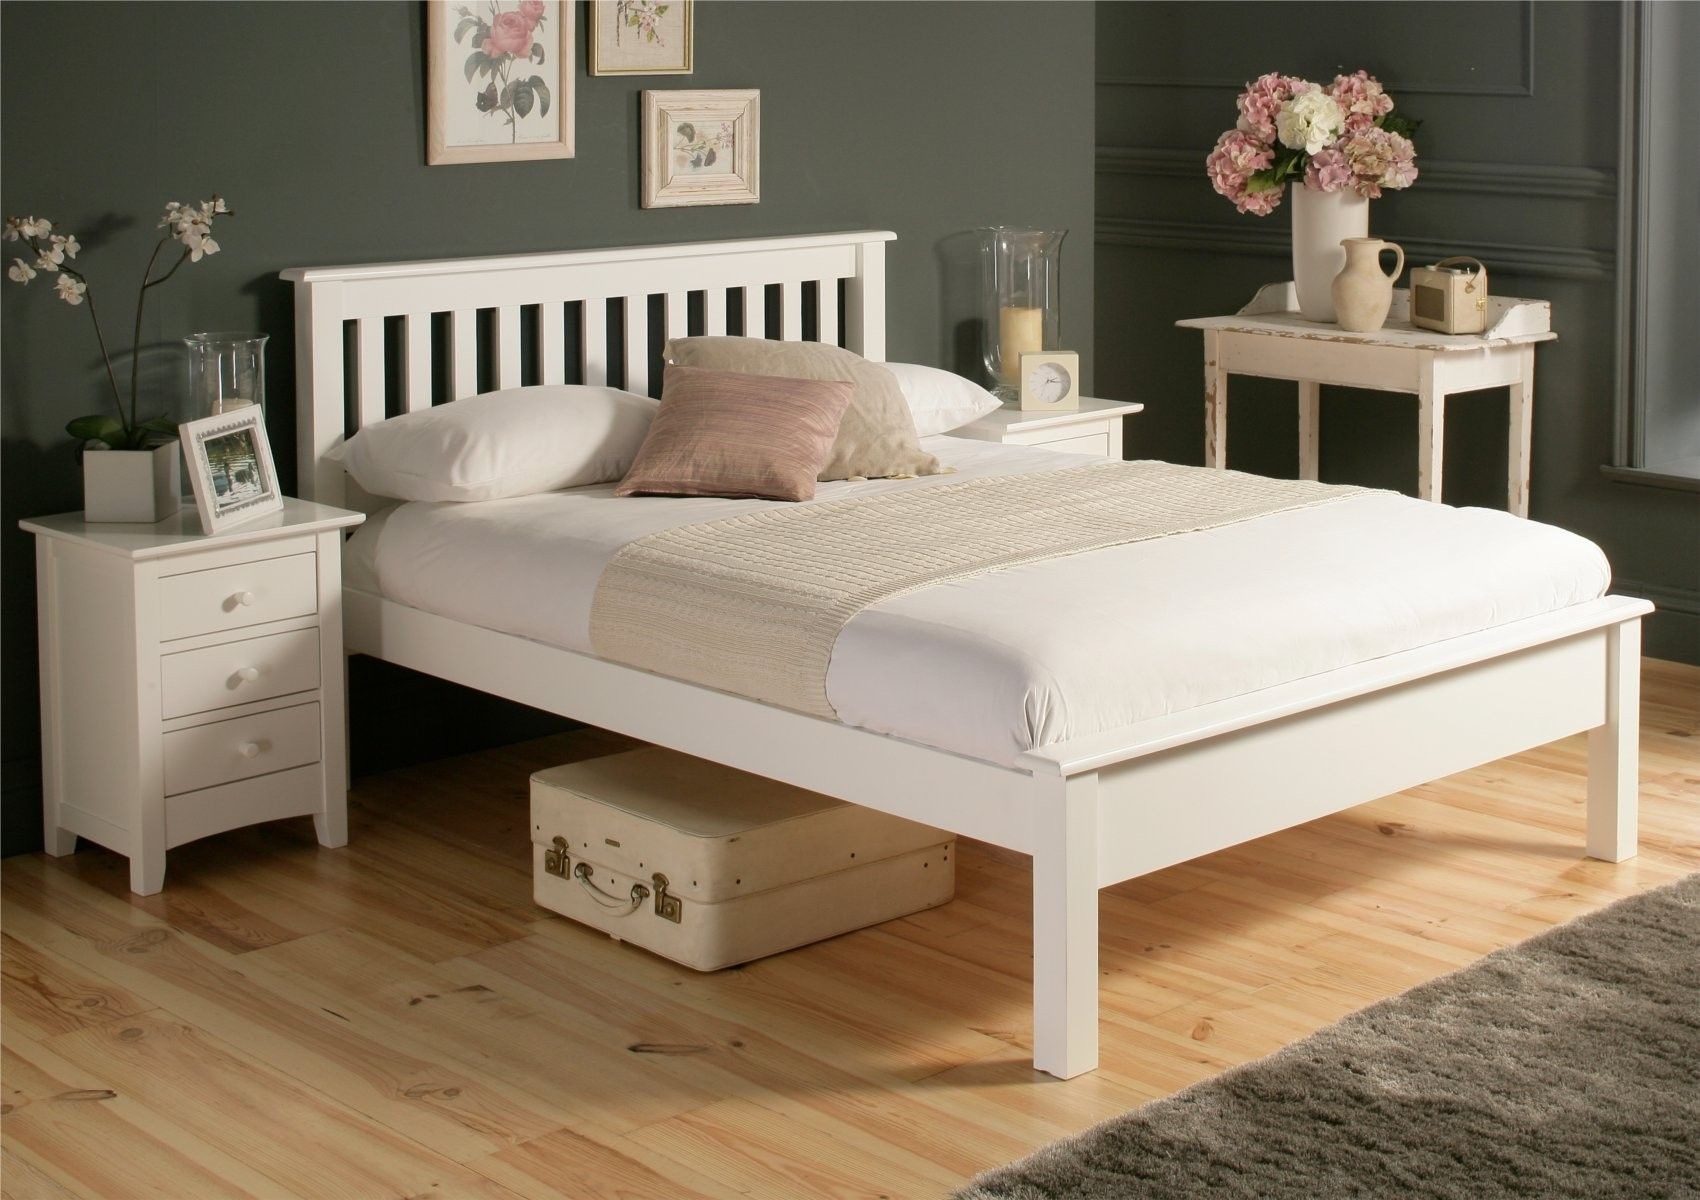 £169 Time4sleep.co.uk Shaker White Wooden Bed Frame LFE